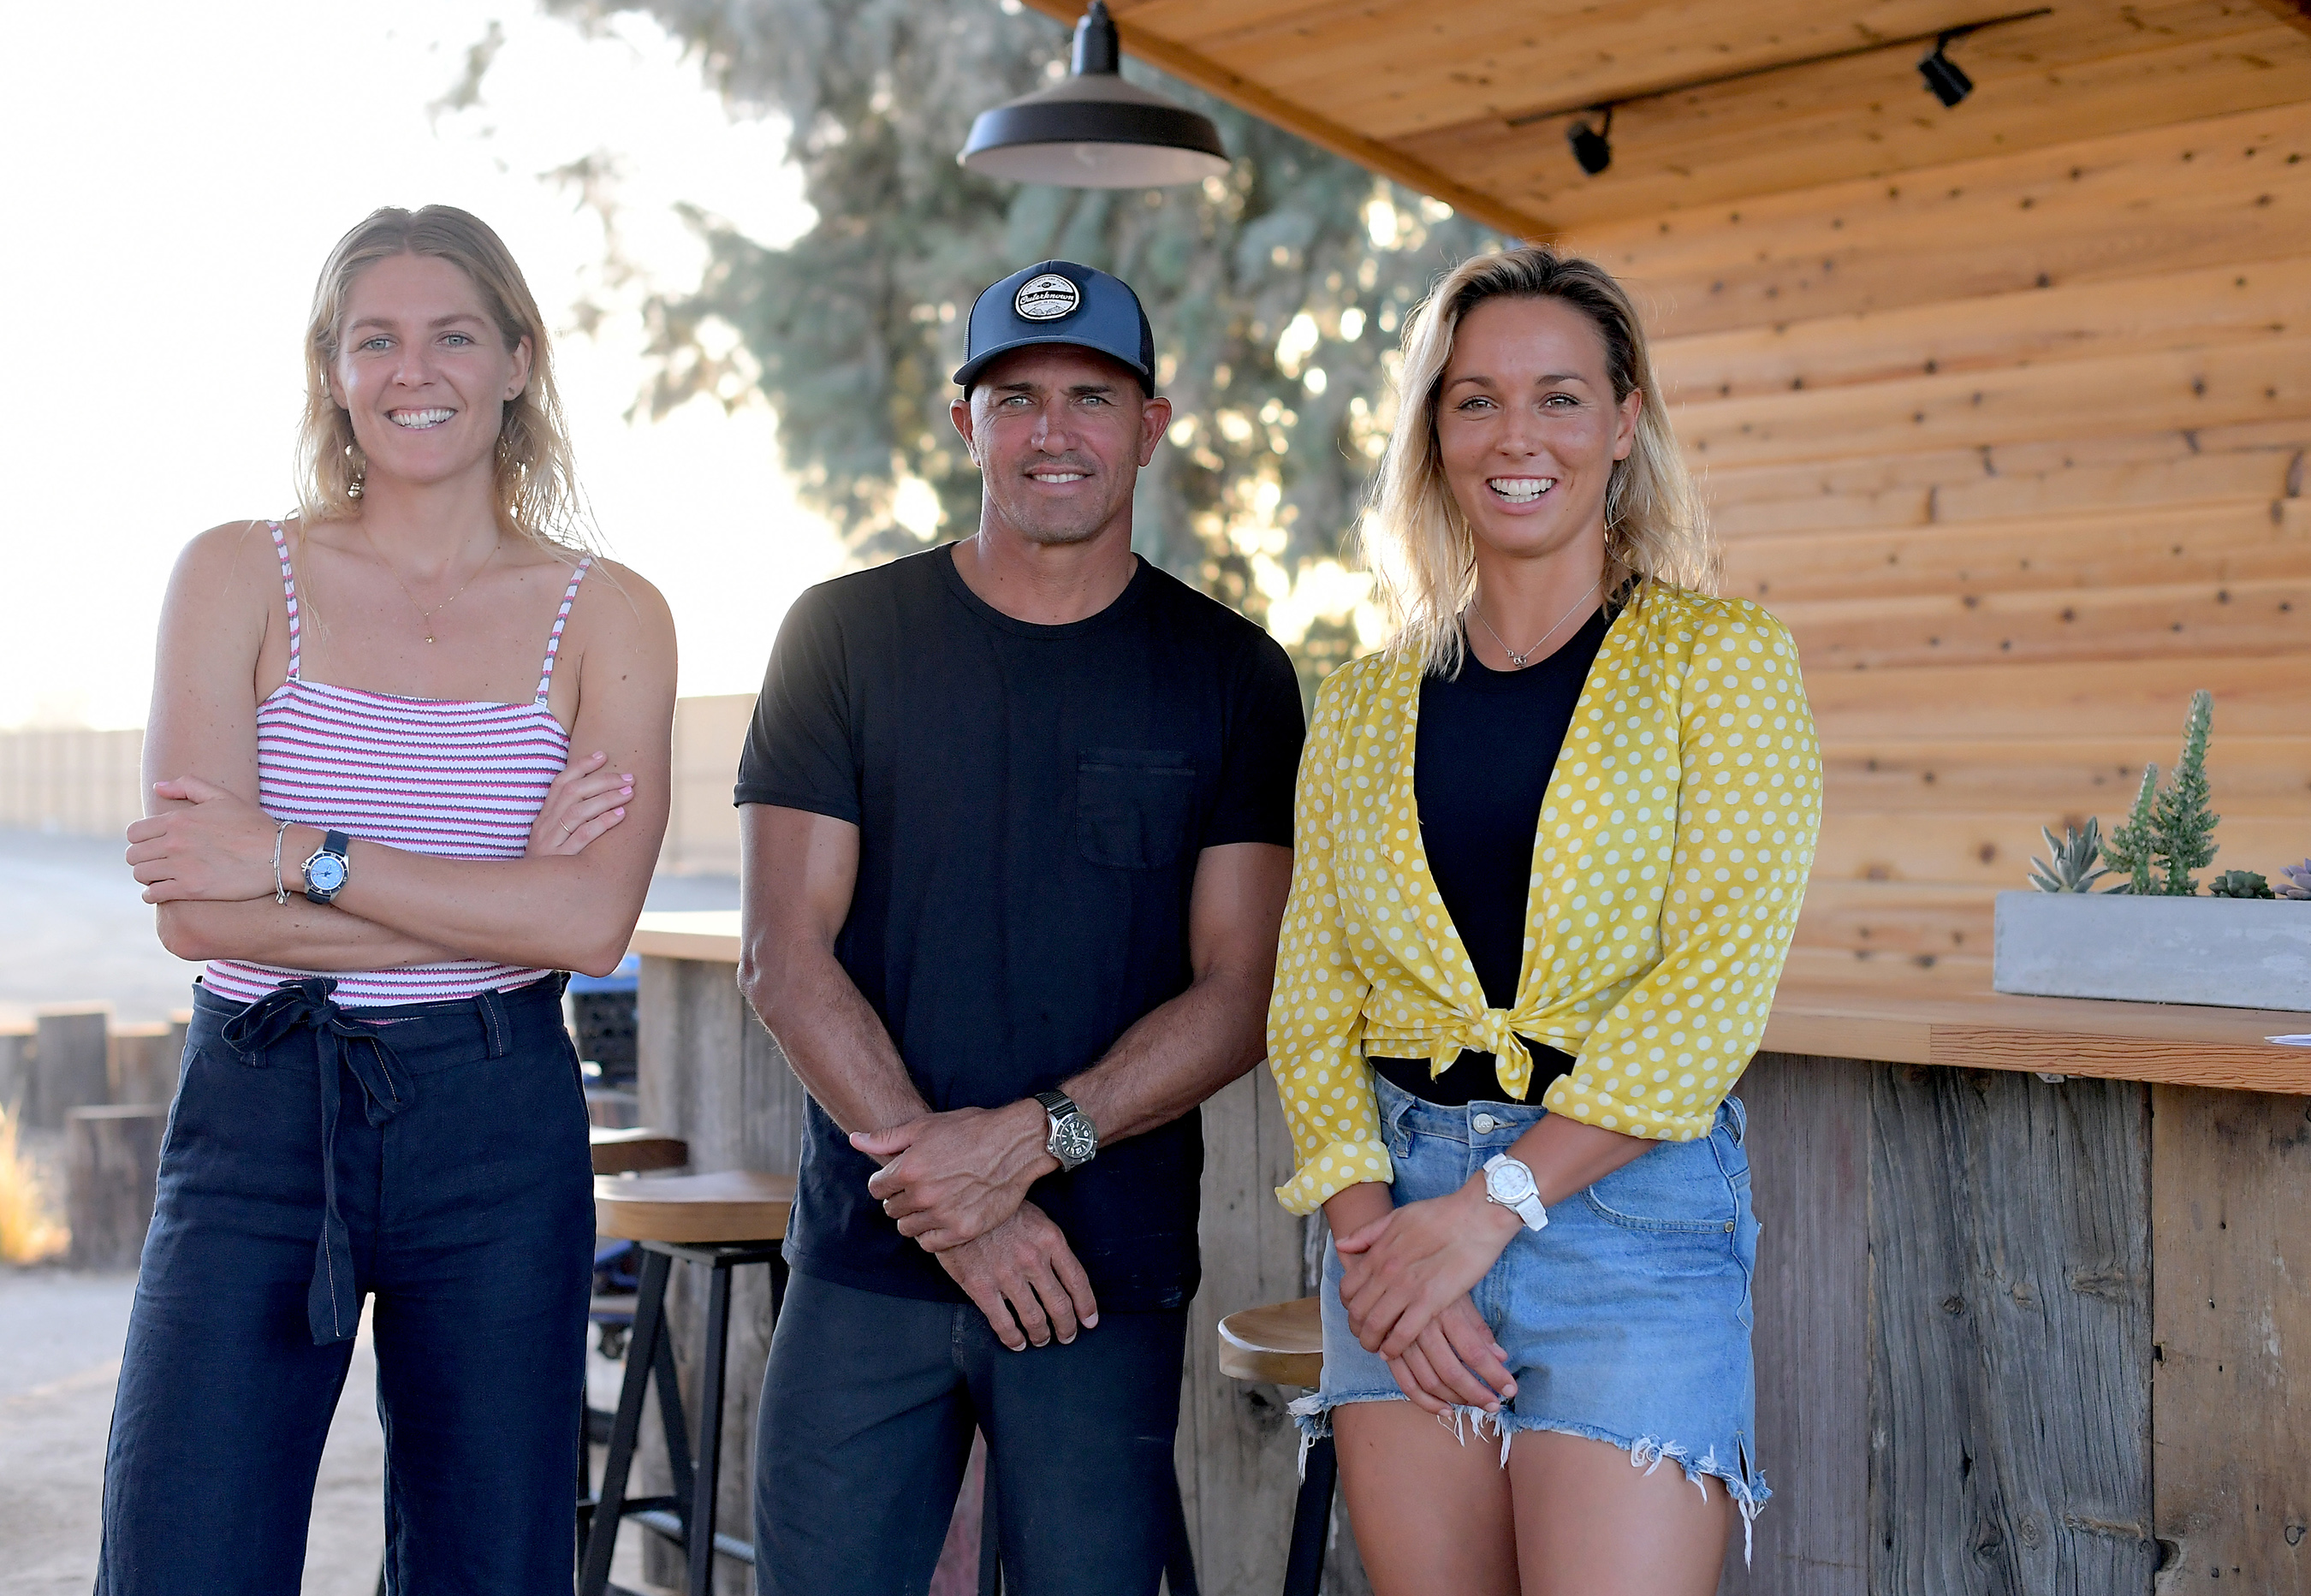 Breitling Surfers Squad Members Stephanie Gilmore, Kelly Slater and Sally Fitzgibbons at the Surf Ranch in Leemore, California.